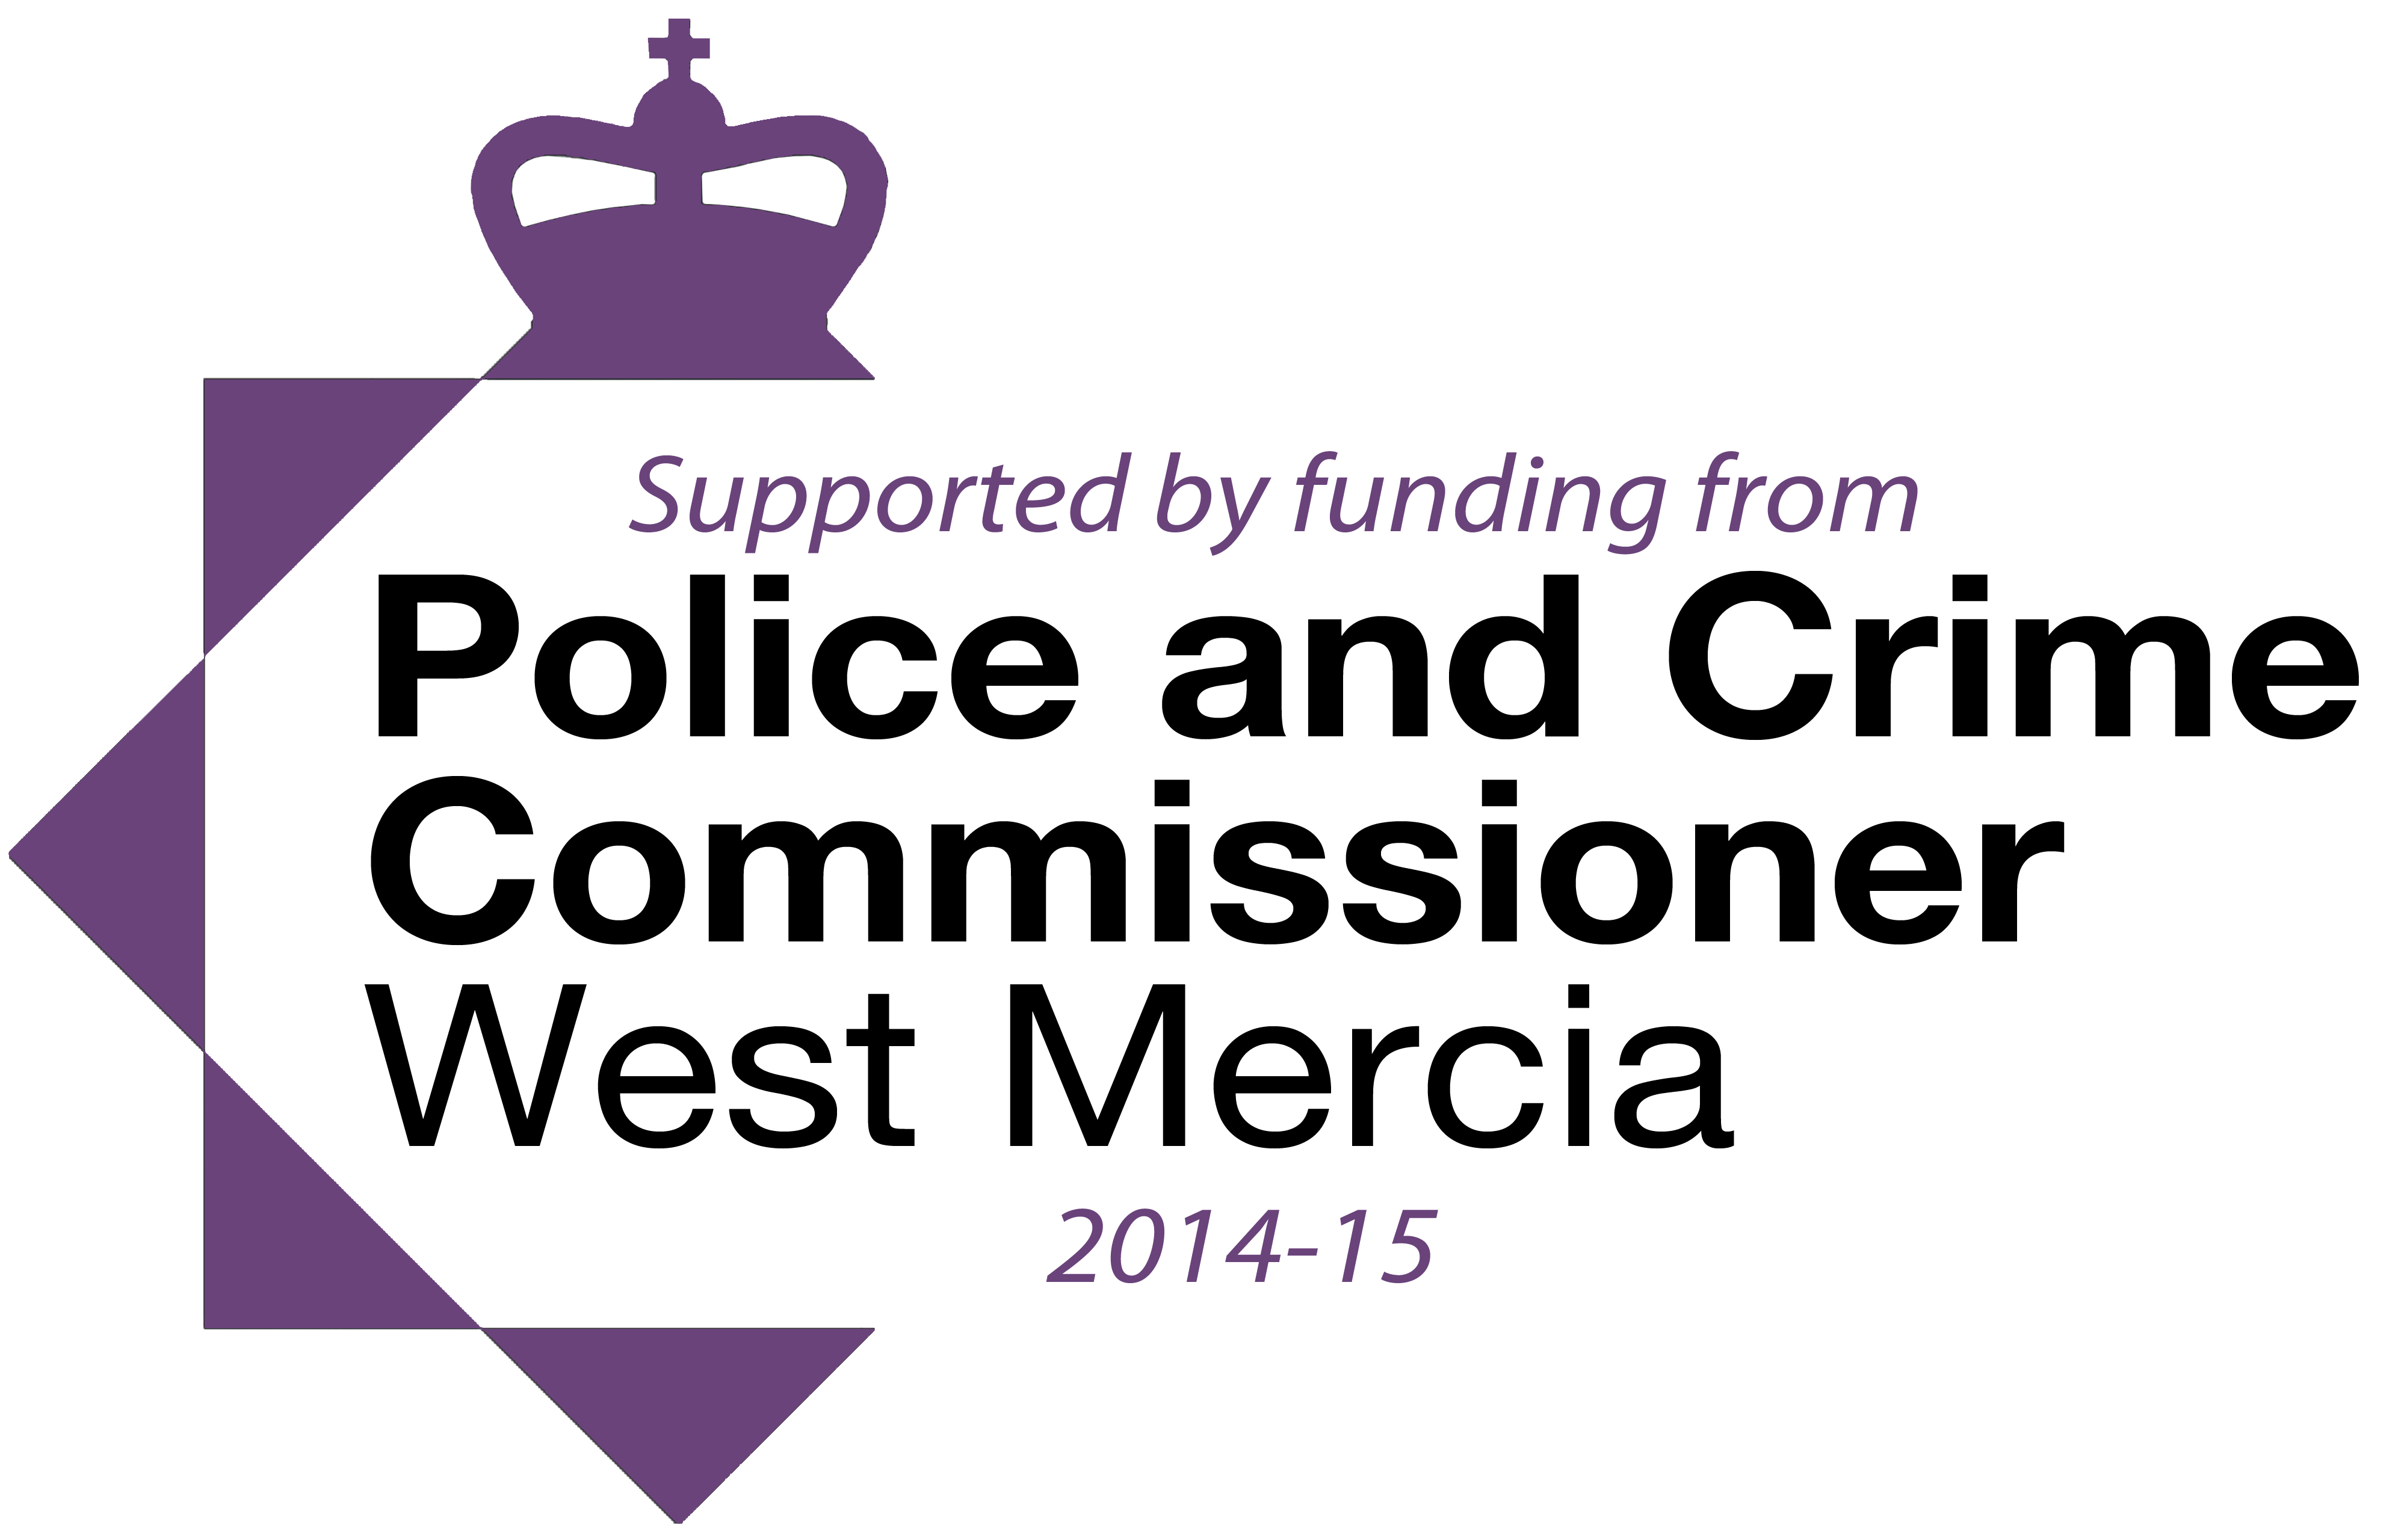 Police and Crime Commissioner – West Mercia